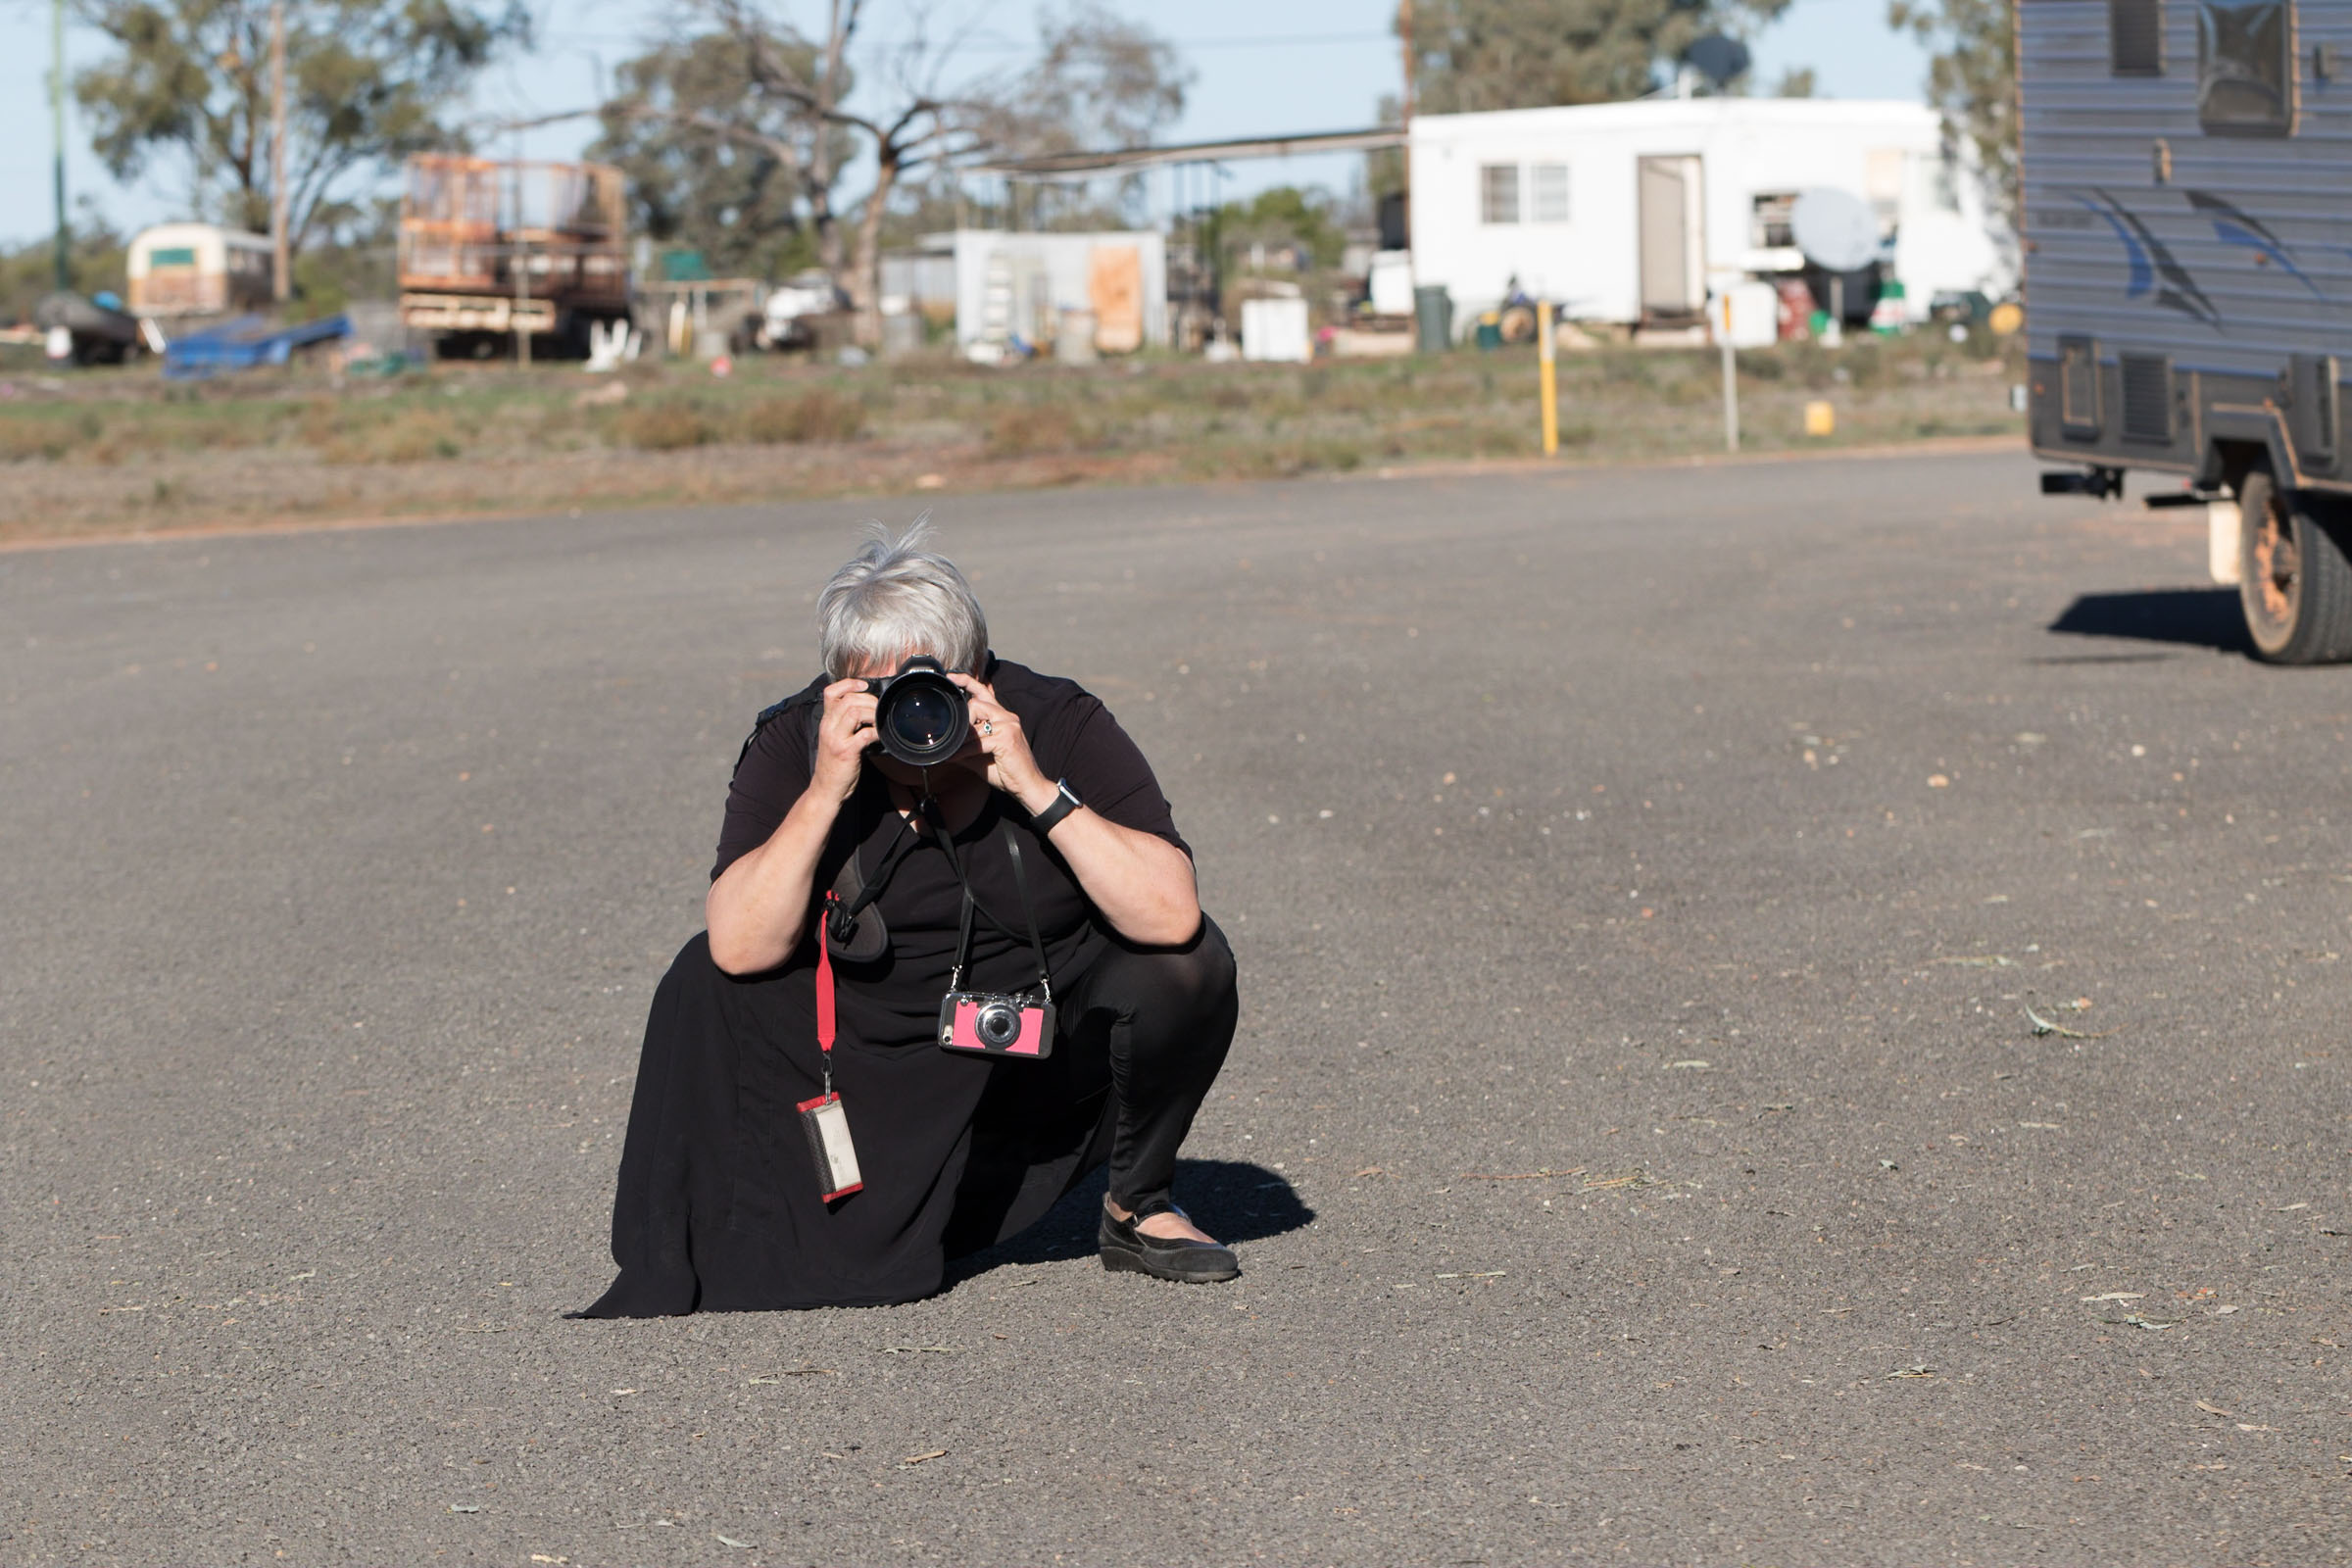 Photo of Caro Telfer, photographer, squatting i a not very ladylike position to take a photo.